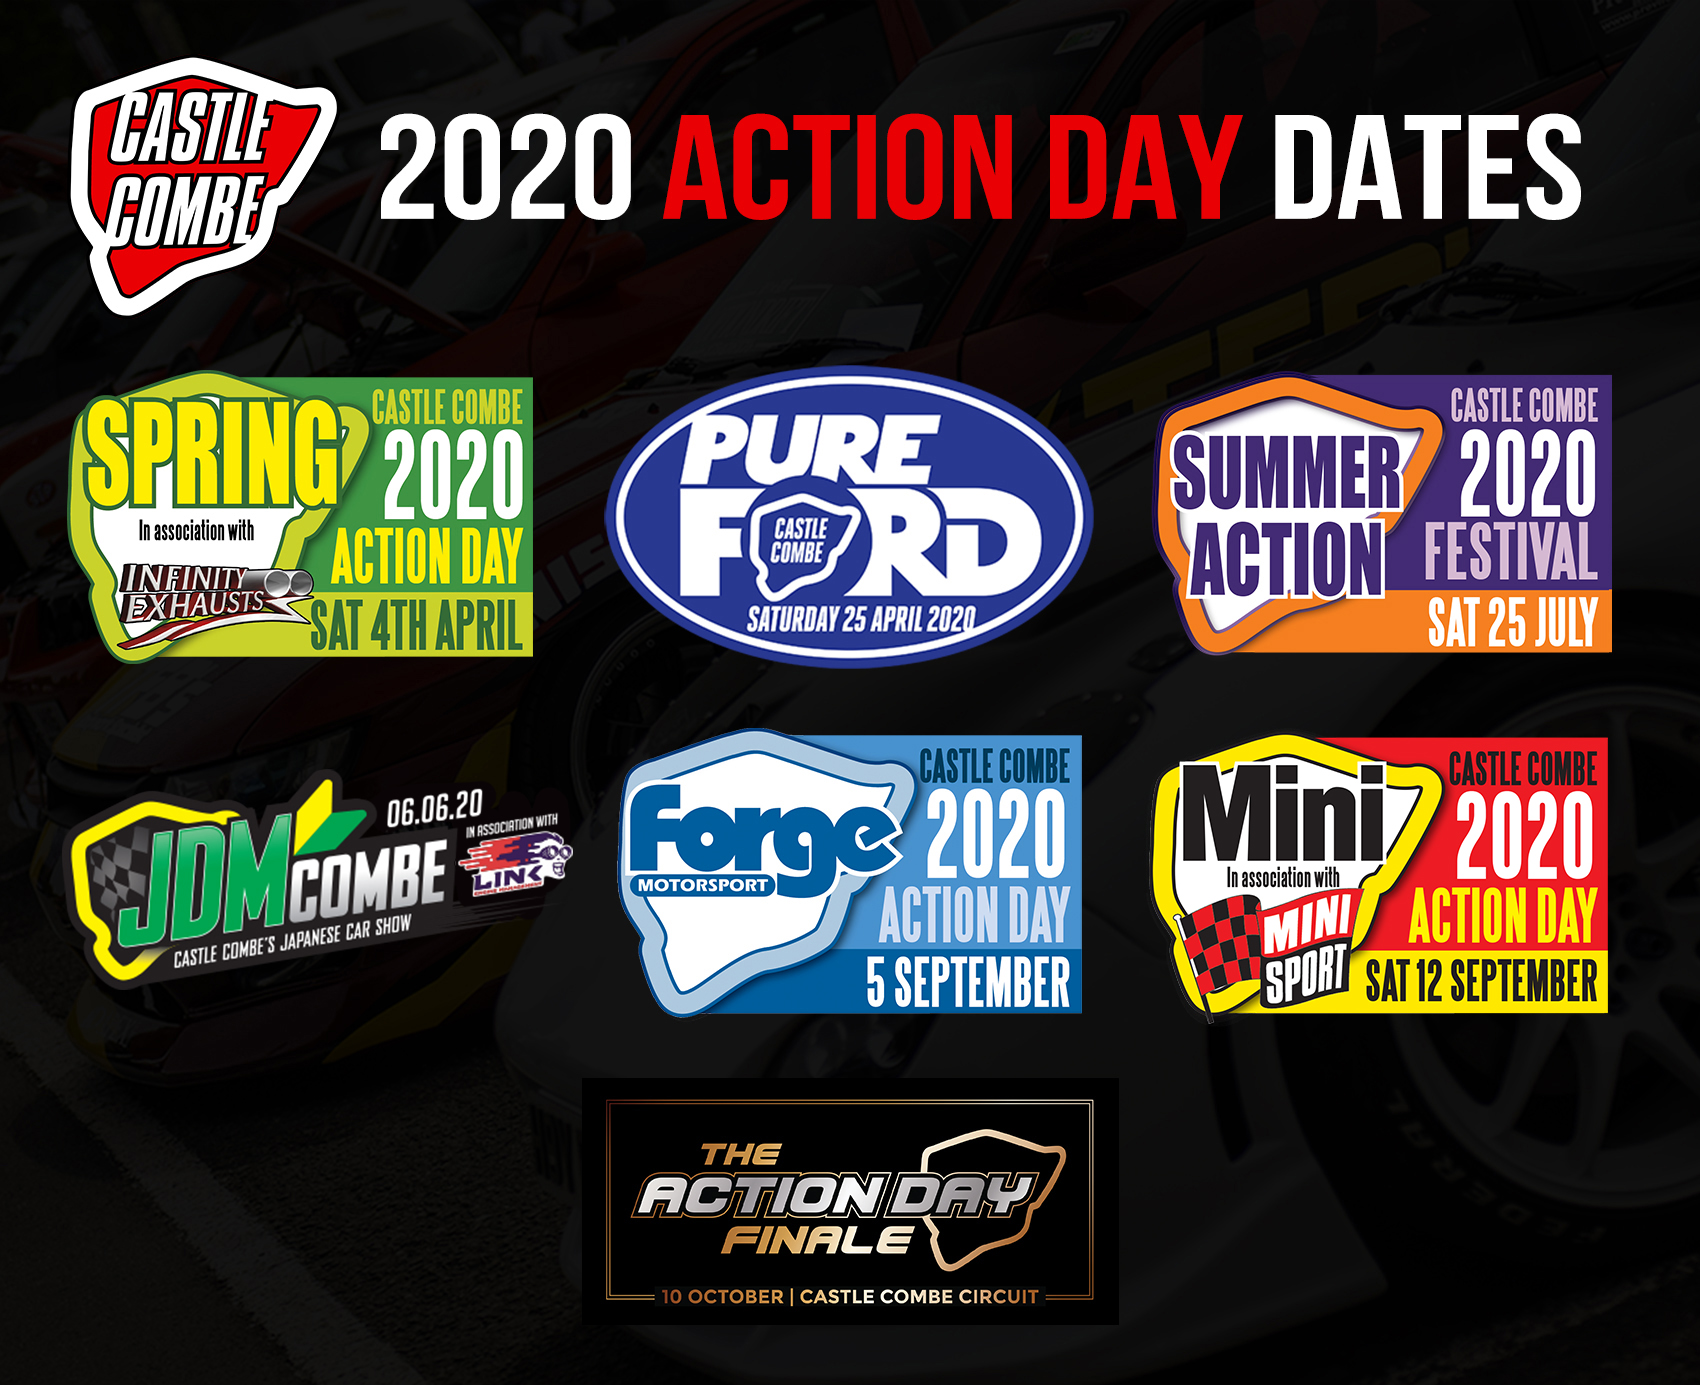 ACTION DAY DATES REVEALED FOR CASTLE COMBE CIRCUITS 2020 CALENDAR